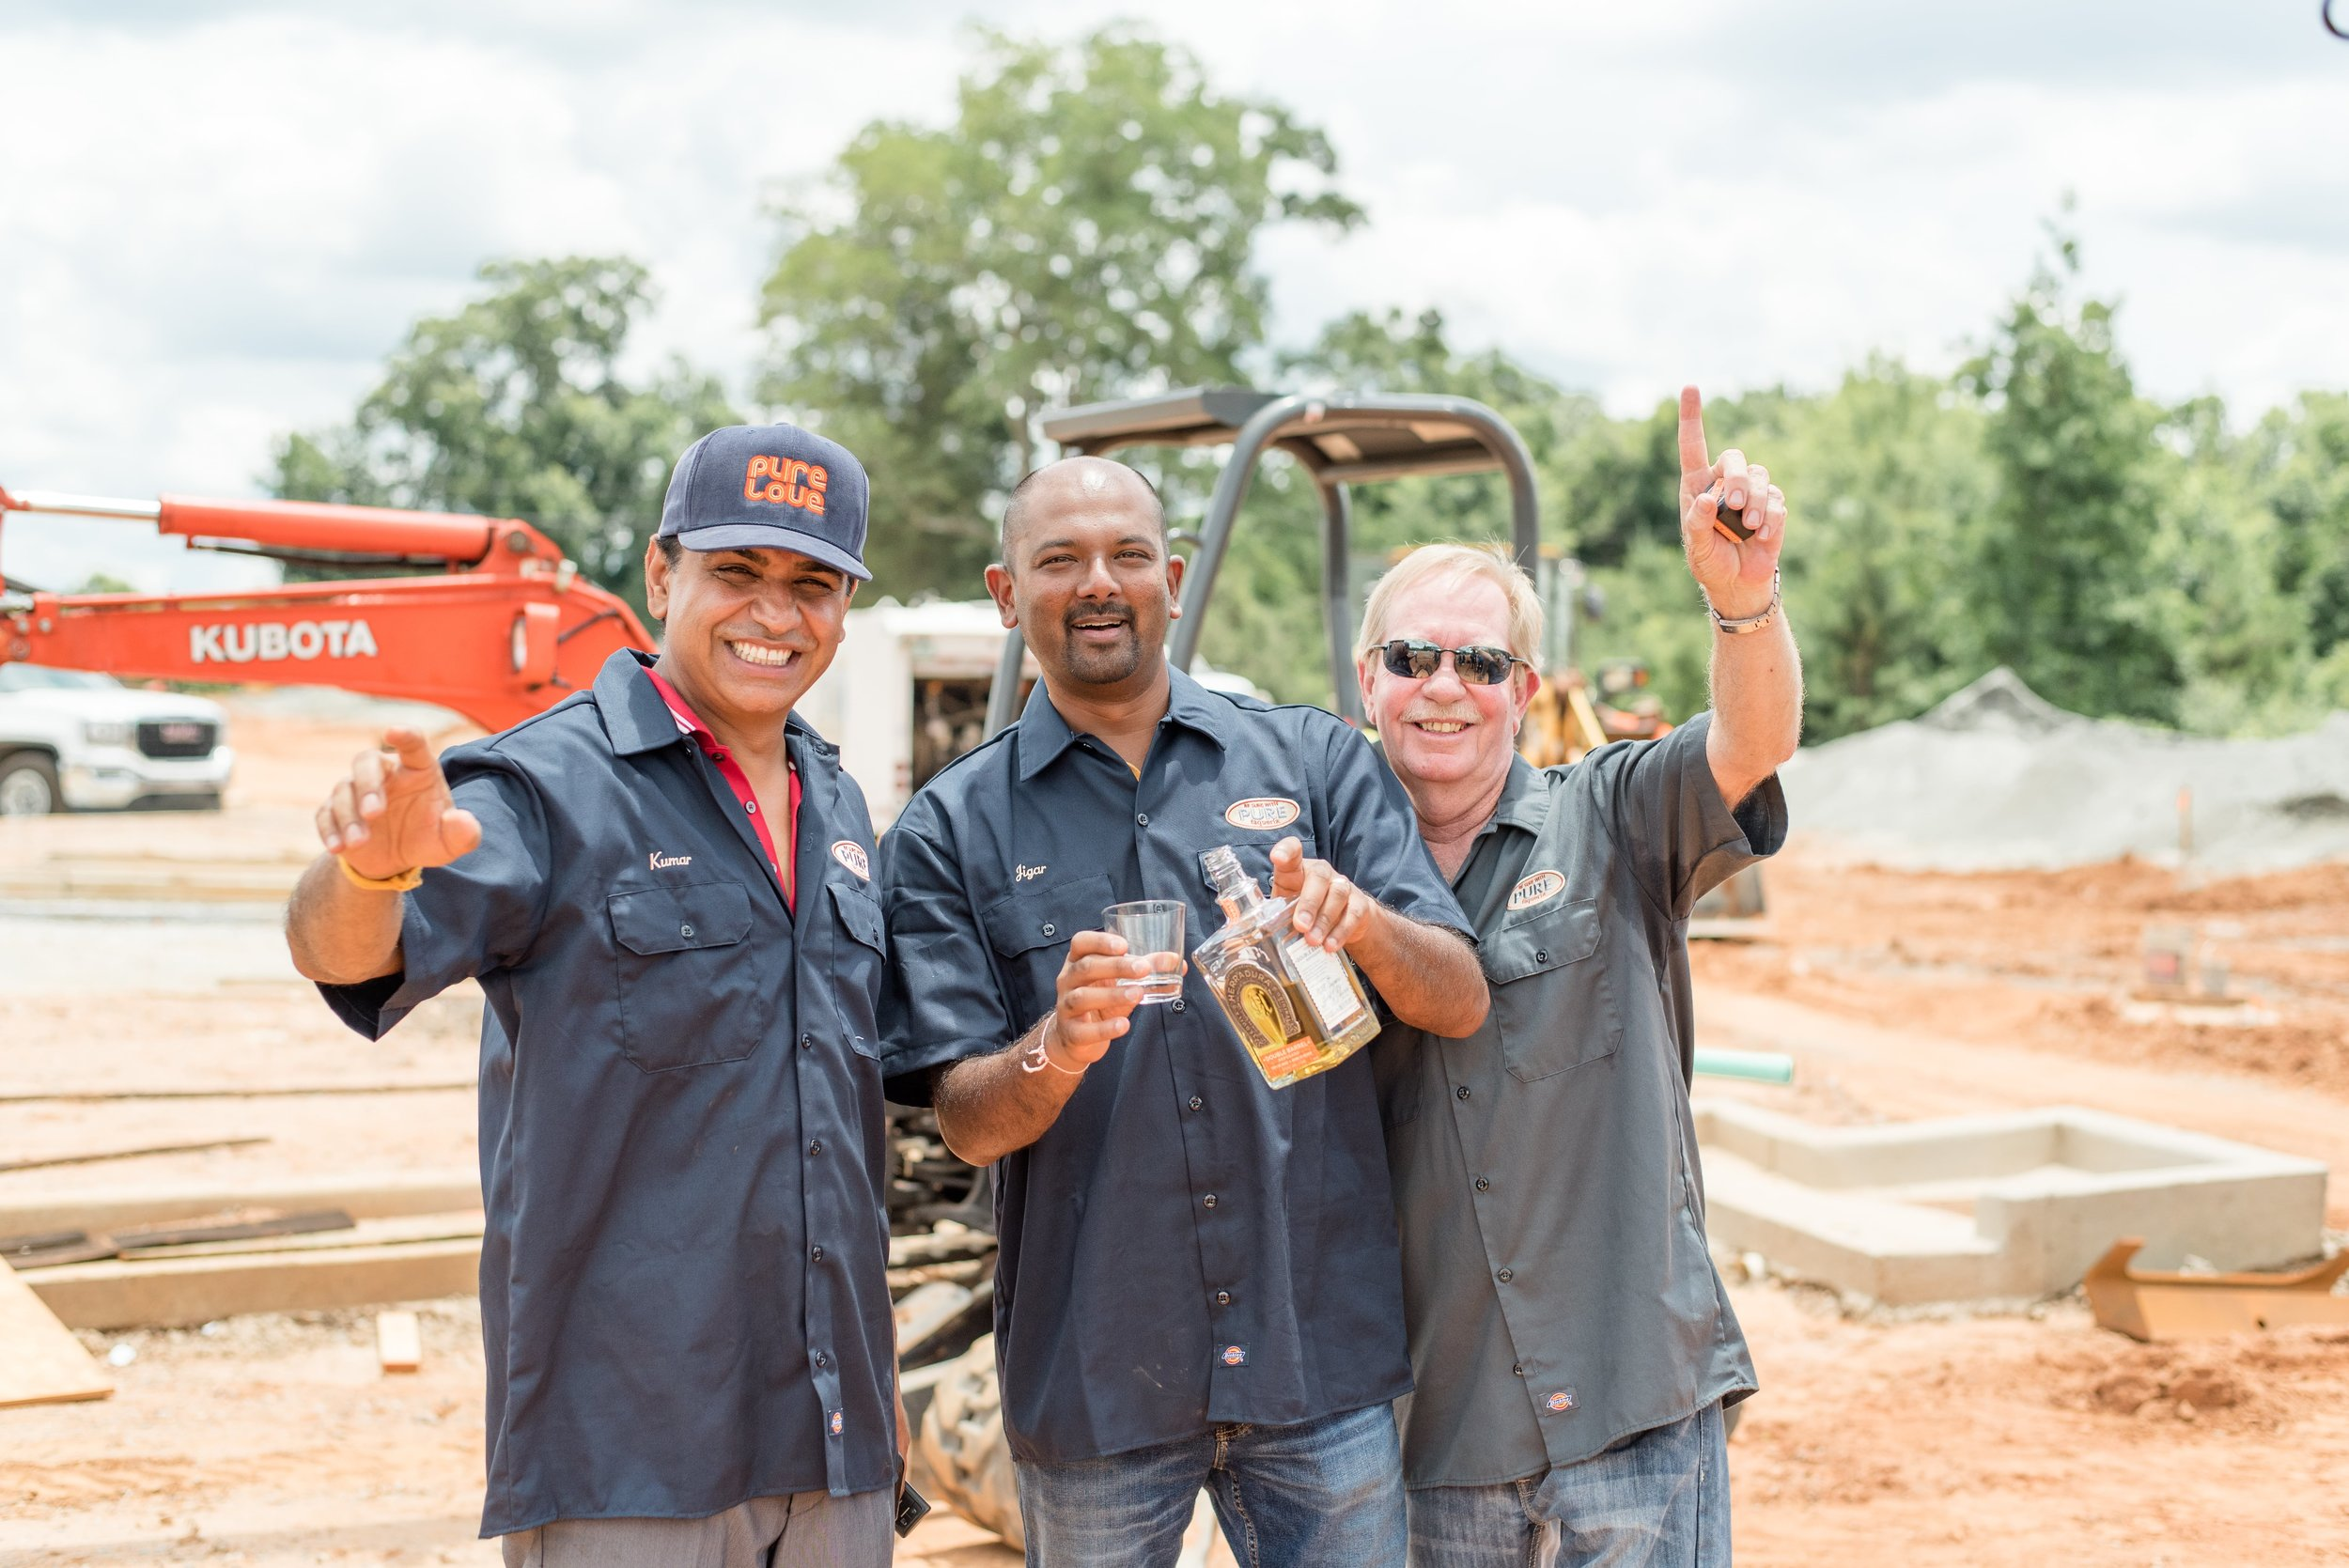 Pictured : Franchisees Suresh Kumar (left) , Jigar Shah (middle), and manager Dennis Butterfield (right)